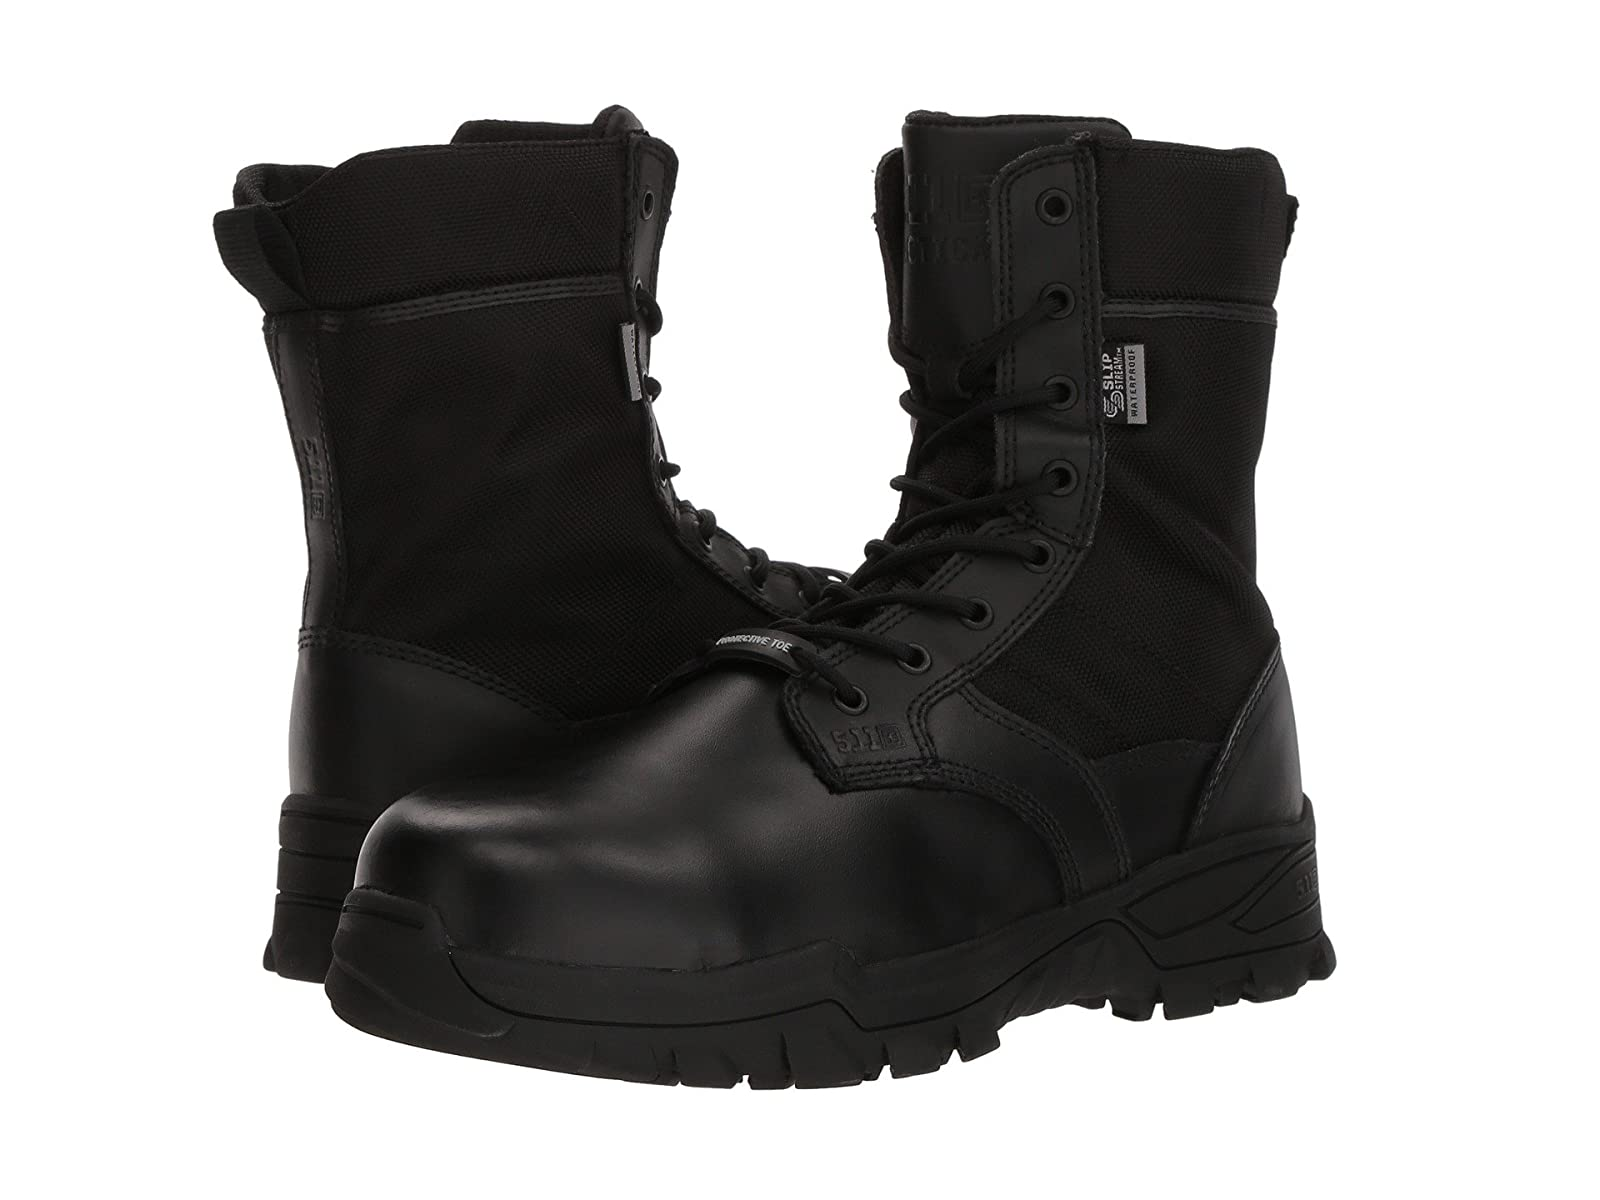 """5.11 Tactical (CST) Speed 3.0 8"""" Shield (CST) Tactical Boot c010f6"""